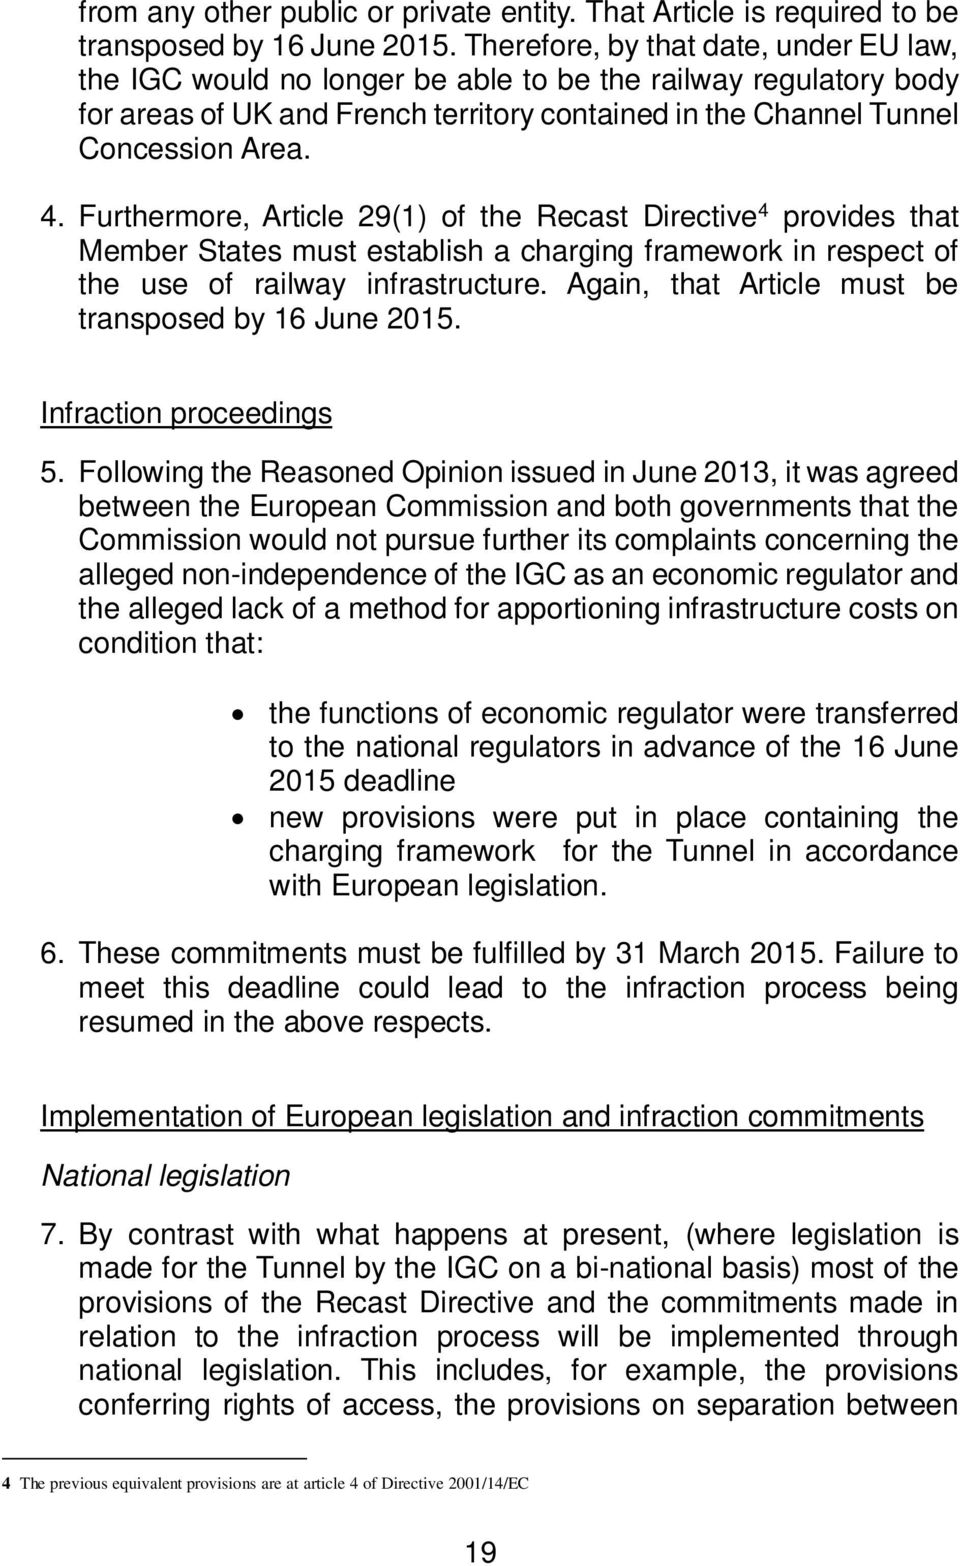 Furthermore, Article 29(1) of the Recast Directive 4 provides that Member States must establish a charging framework in respect of the use of railway infrastructure.